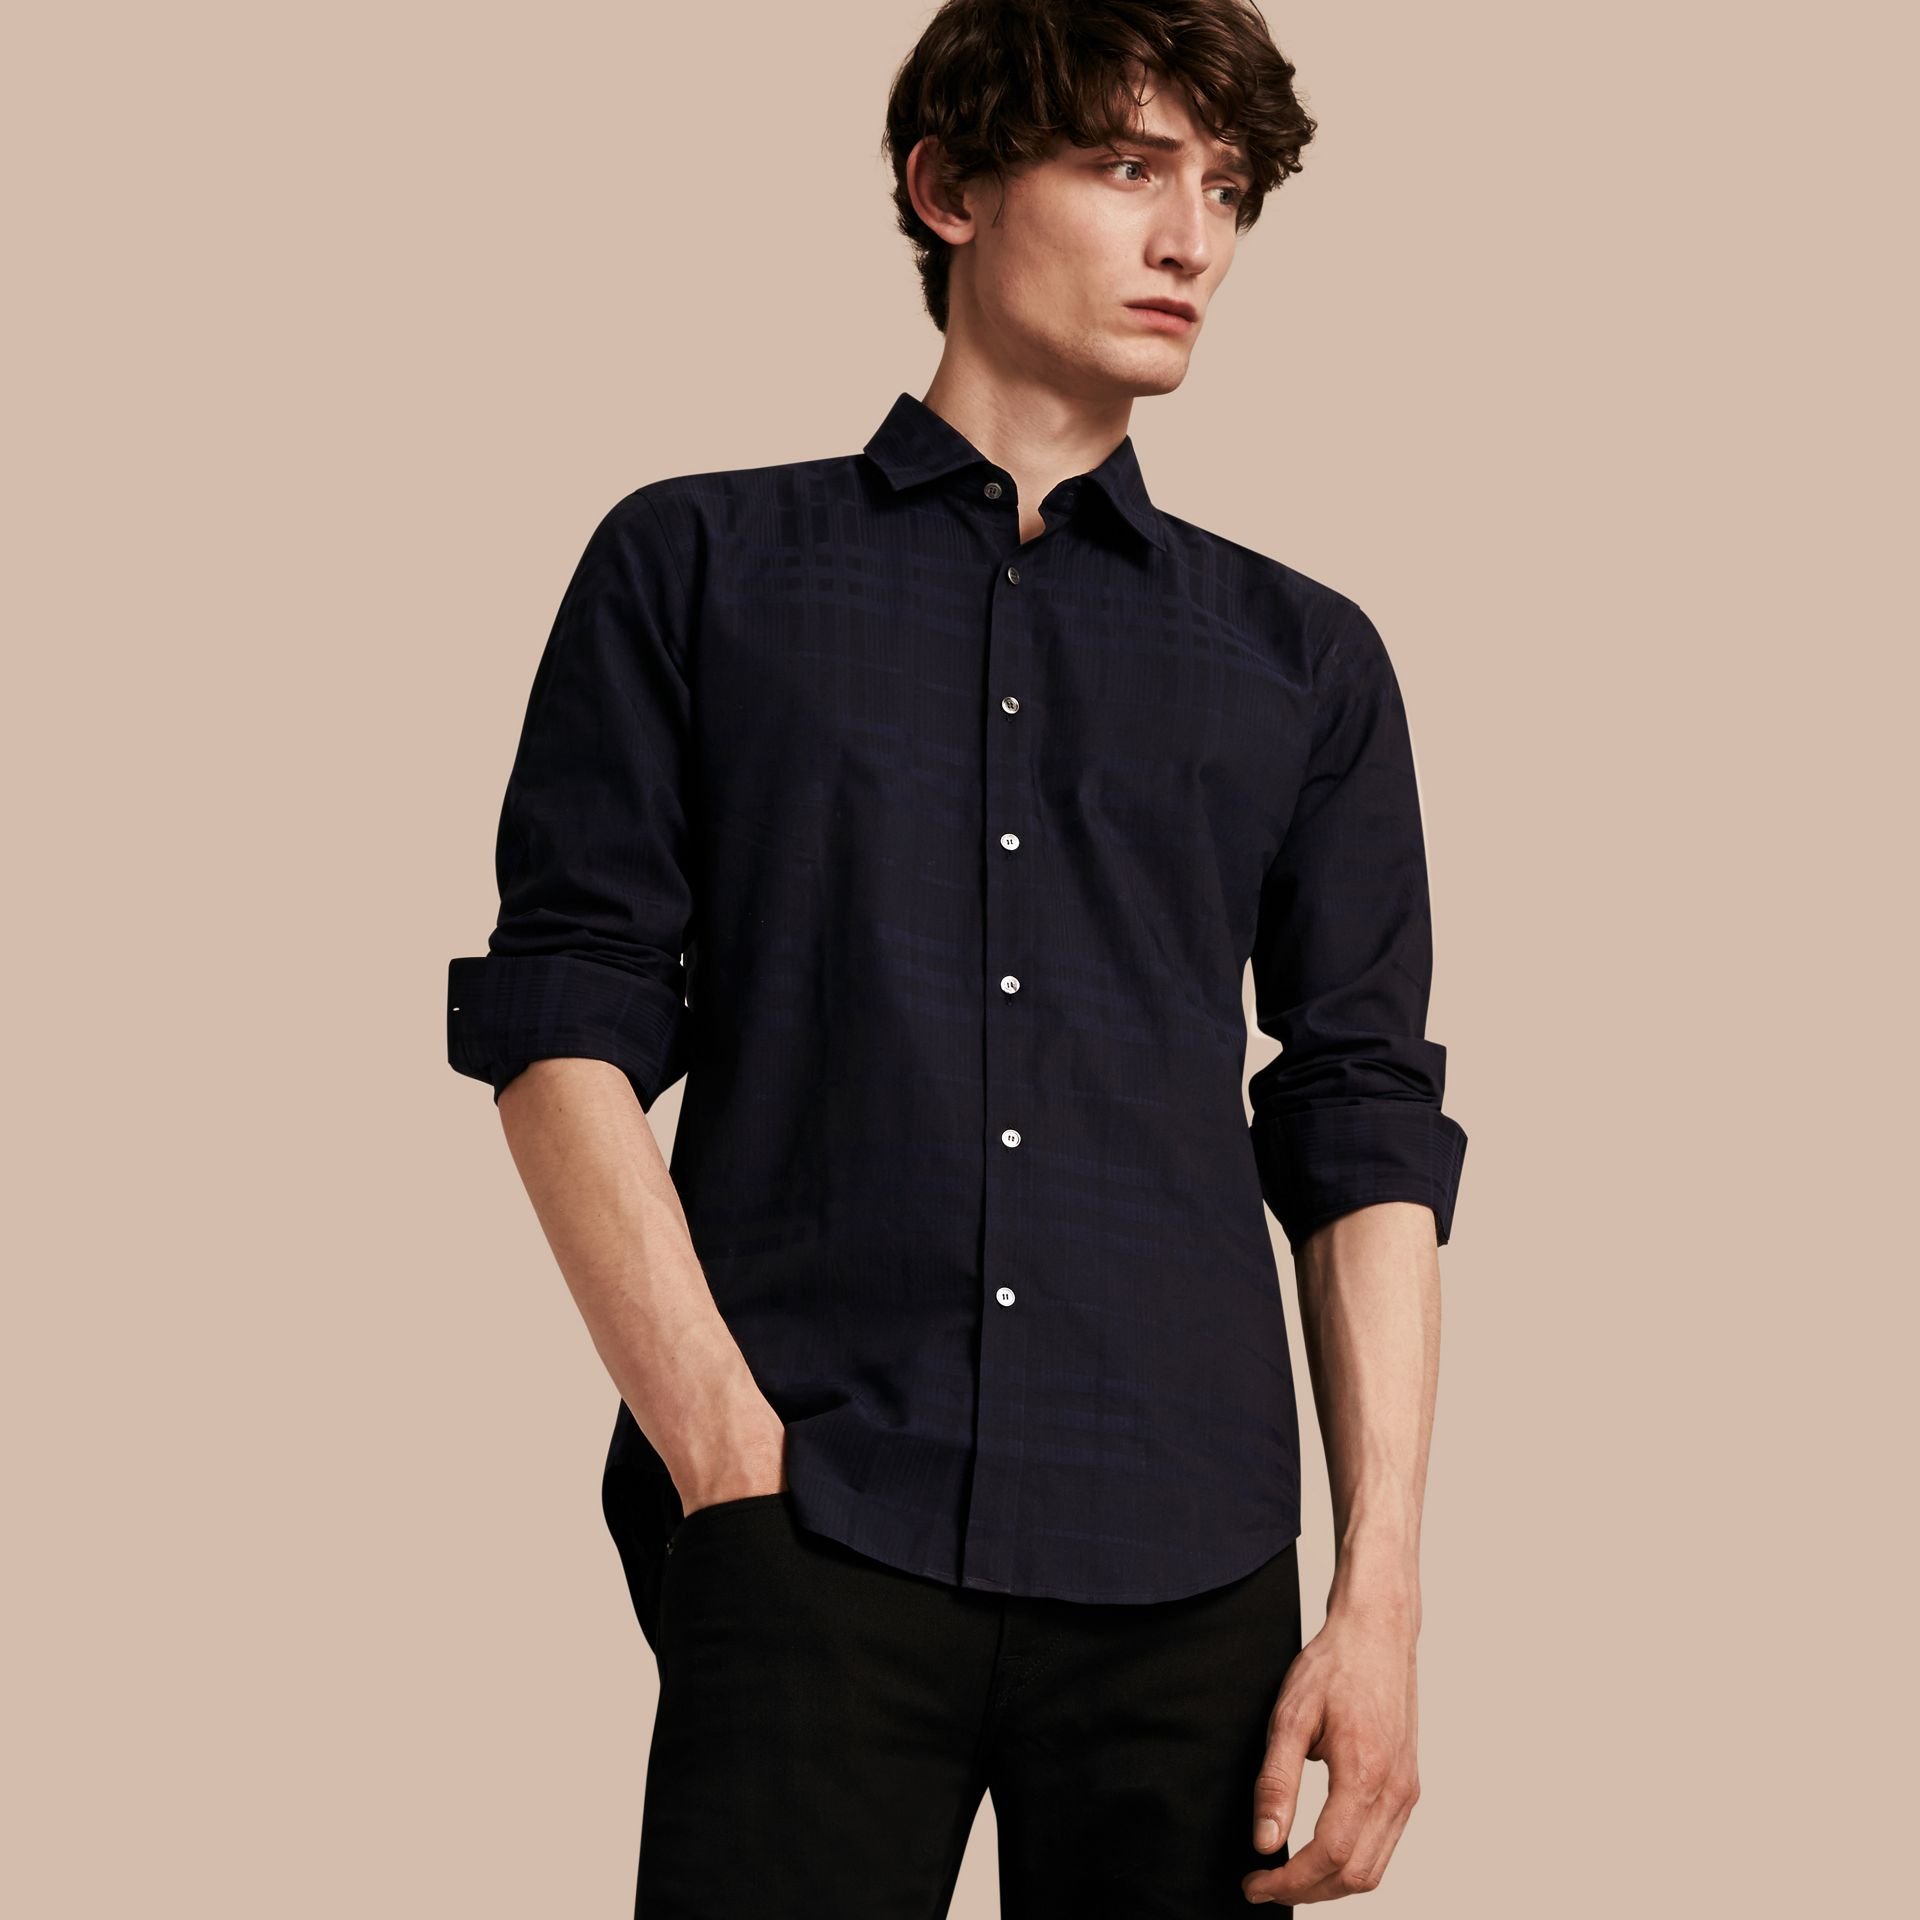 Navy Check Jacquard Cotton Shirt Navy - gallery image 1